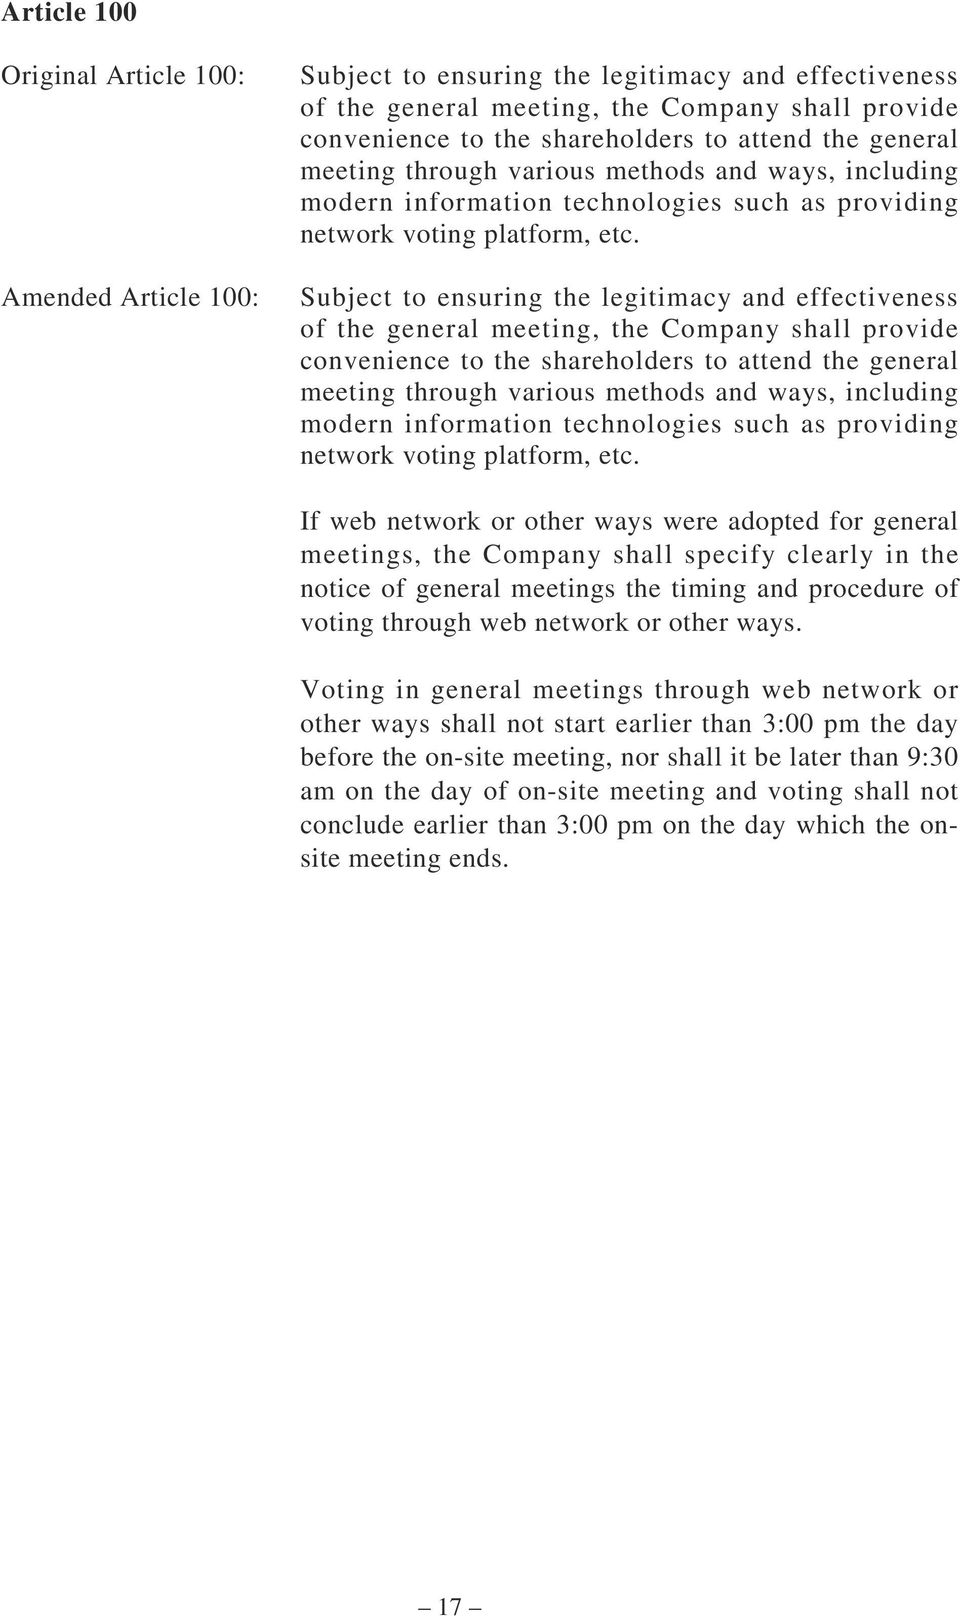 Subject to ensuring the legitimacy and effectiveness of the general meeting, the Company shall provide convenience to the shareholders to attend  If web network or other ways were adopted for general